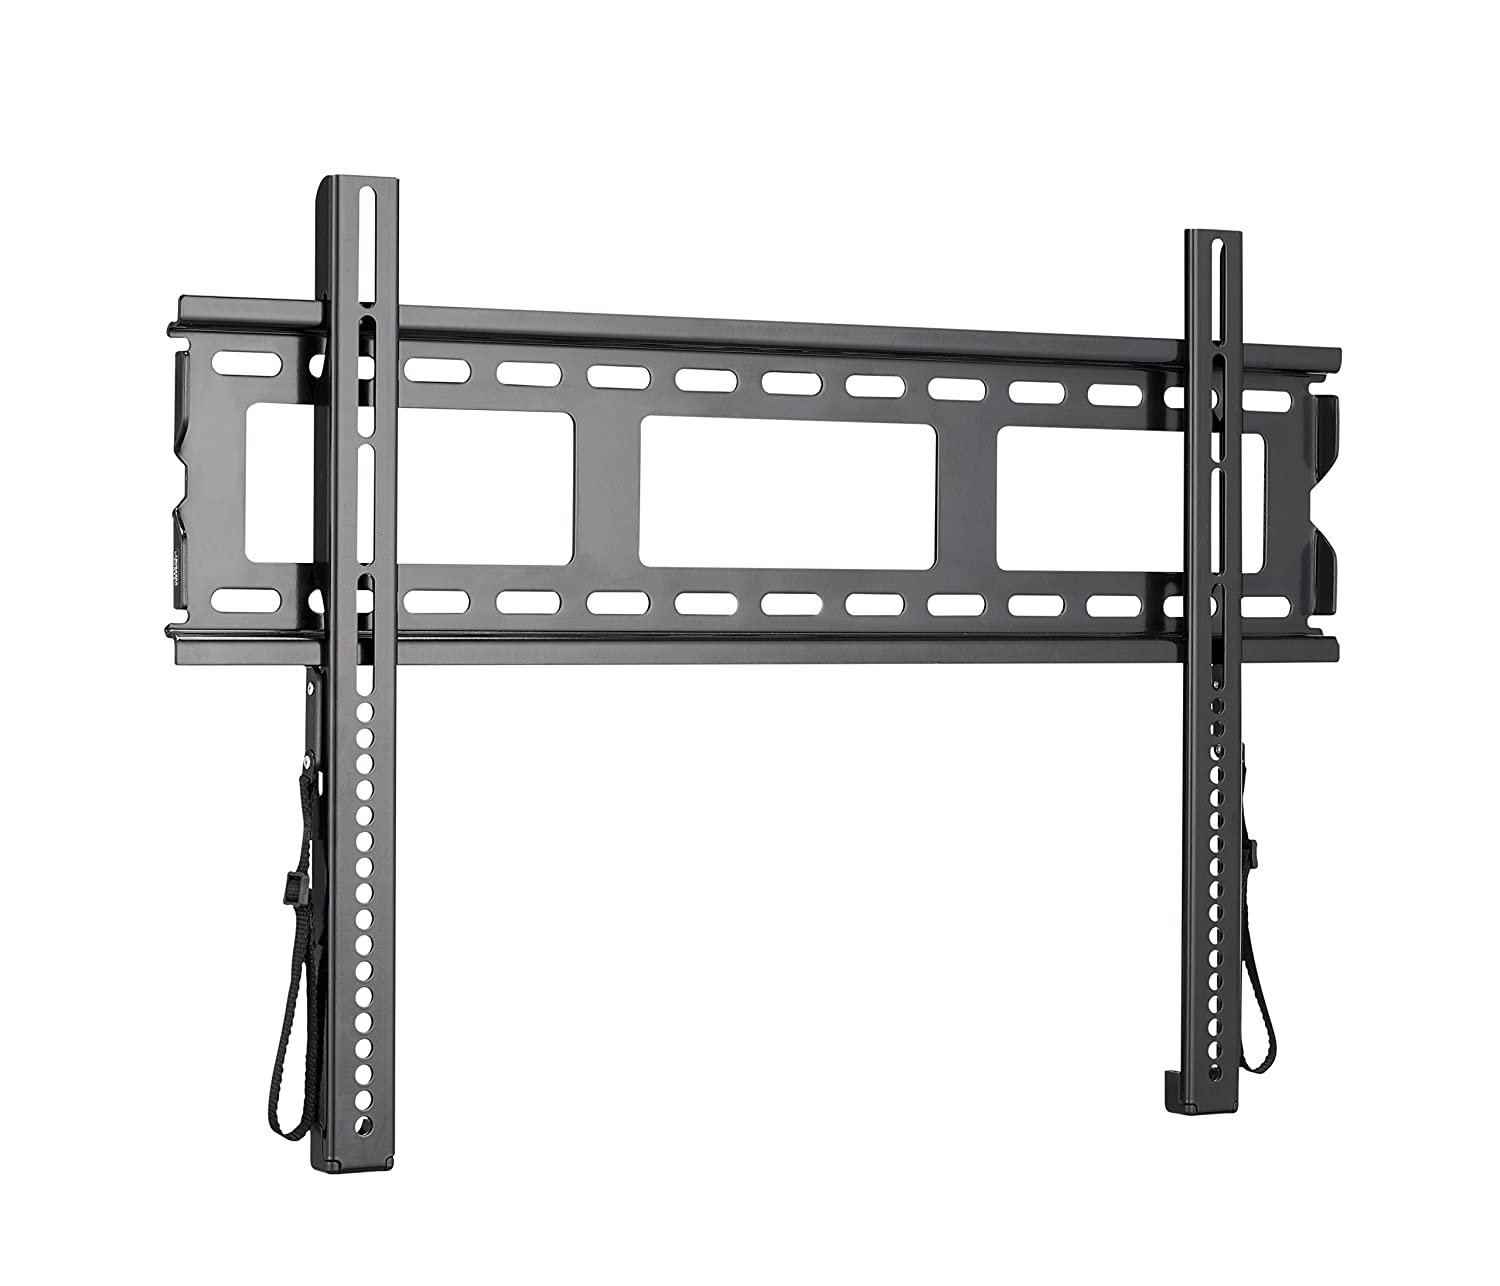 Sanus Super Low Profile TV Wall Mount for 37'-80' LED, LCD and Plasma Flat and Curved Screen TVs and Monitors - MLL11-B1